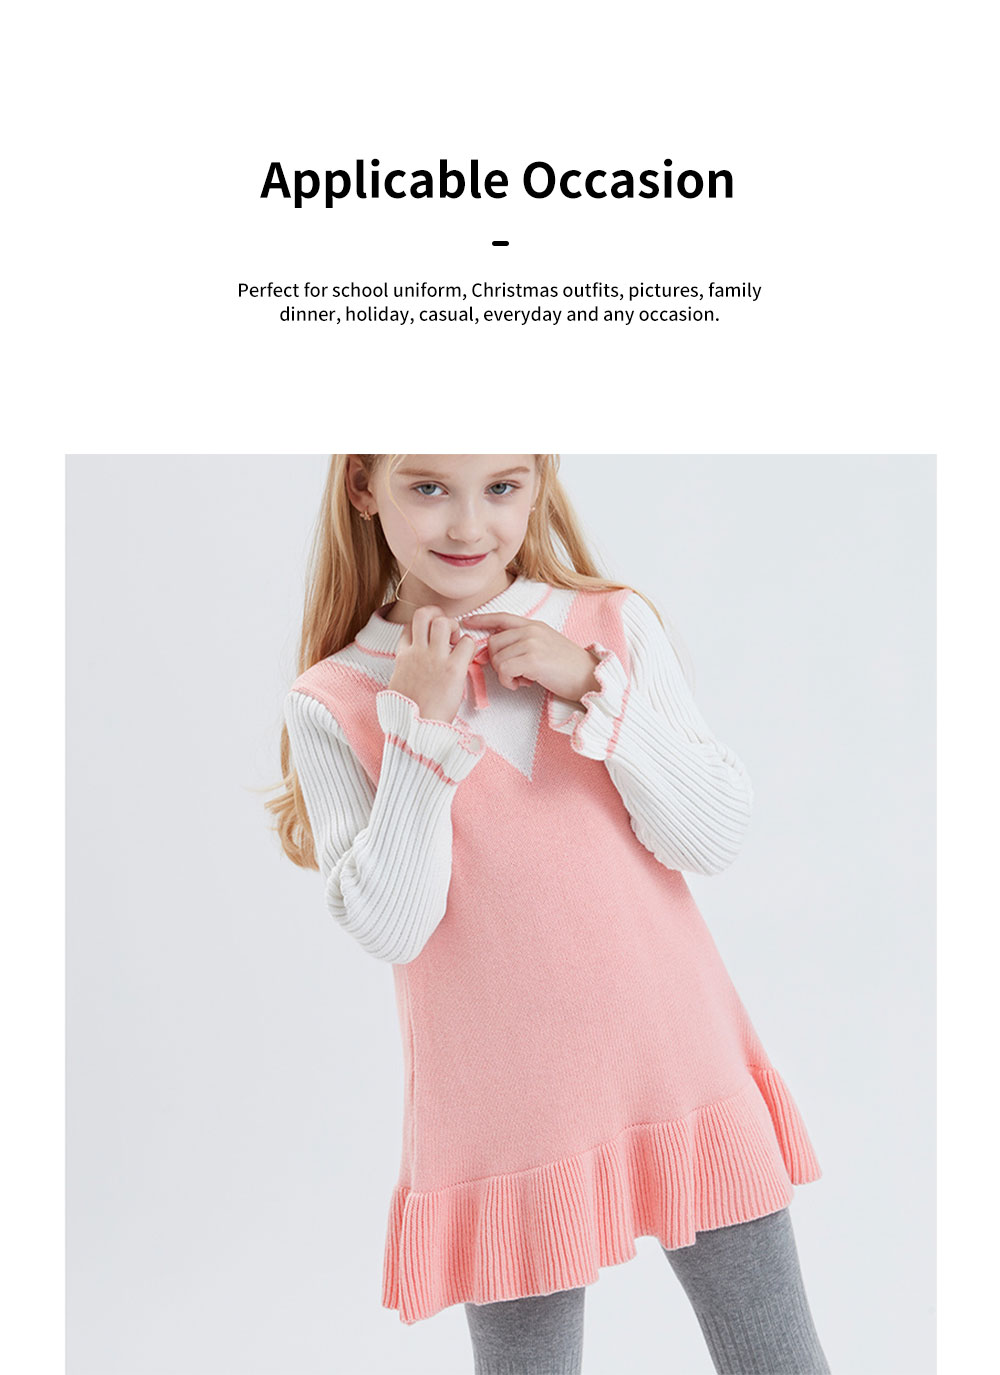 Purified Cotton Girls Sweater Dress Long Sleeve One-piece Warm No-burr Dress for Winter Autumn Princess Dress 3